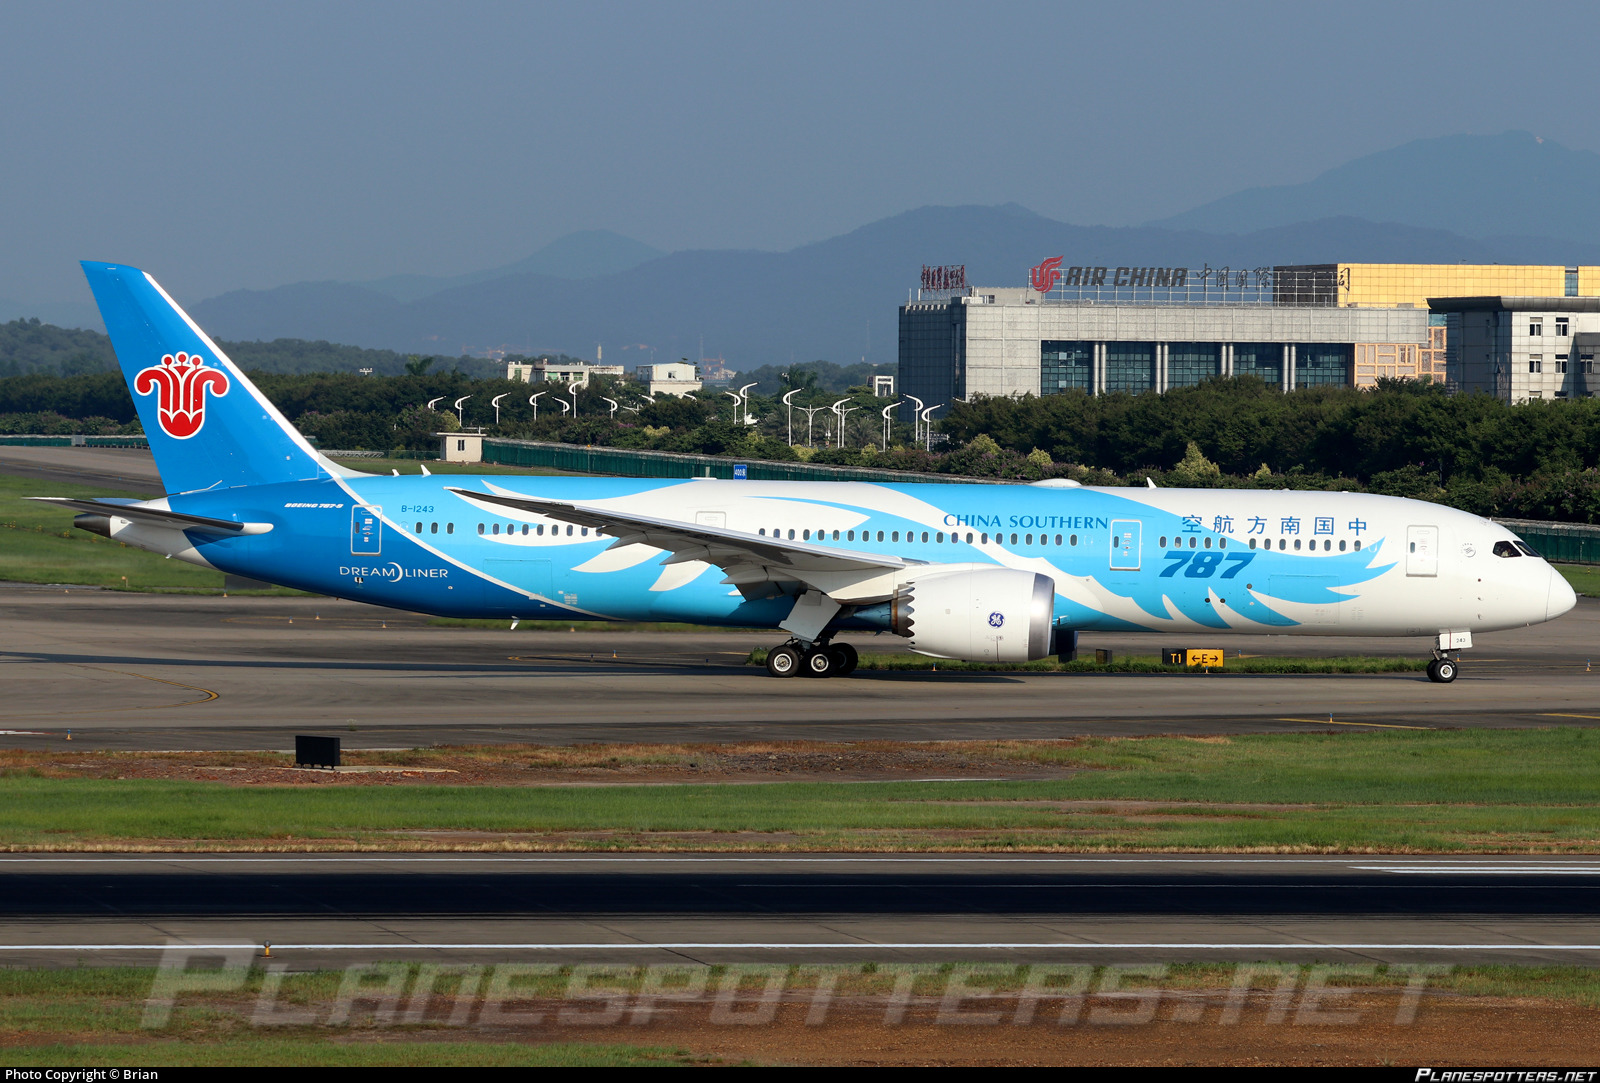 B-1243 China Southern Airlines Boeing 787-9 Dreamliner